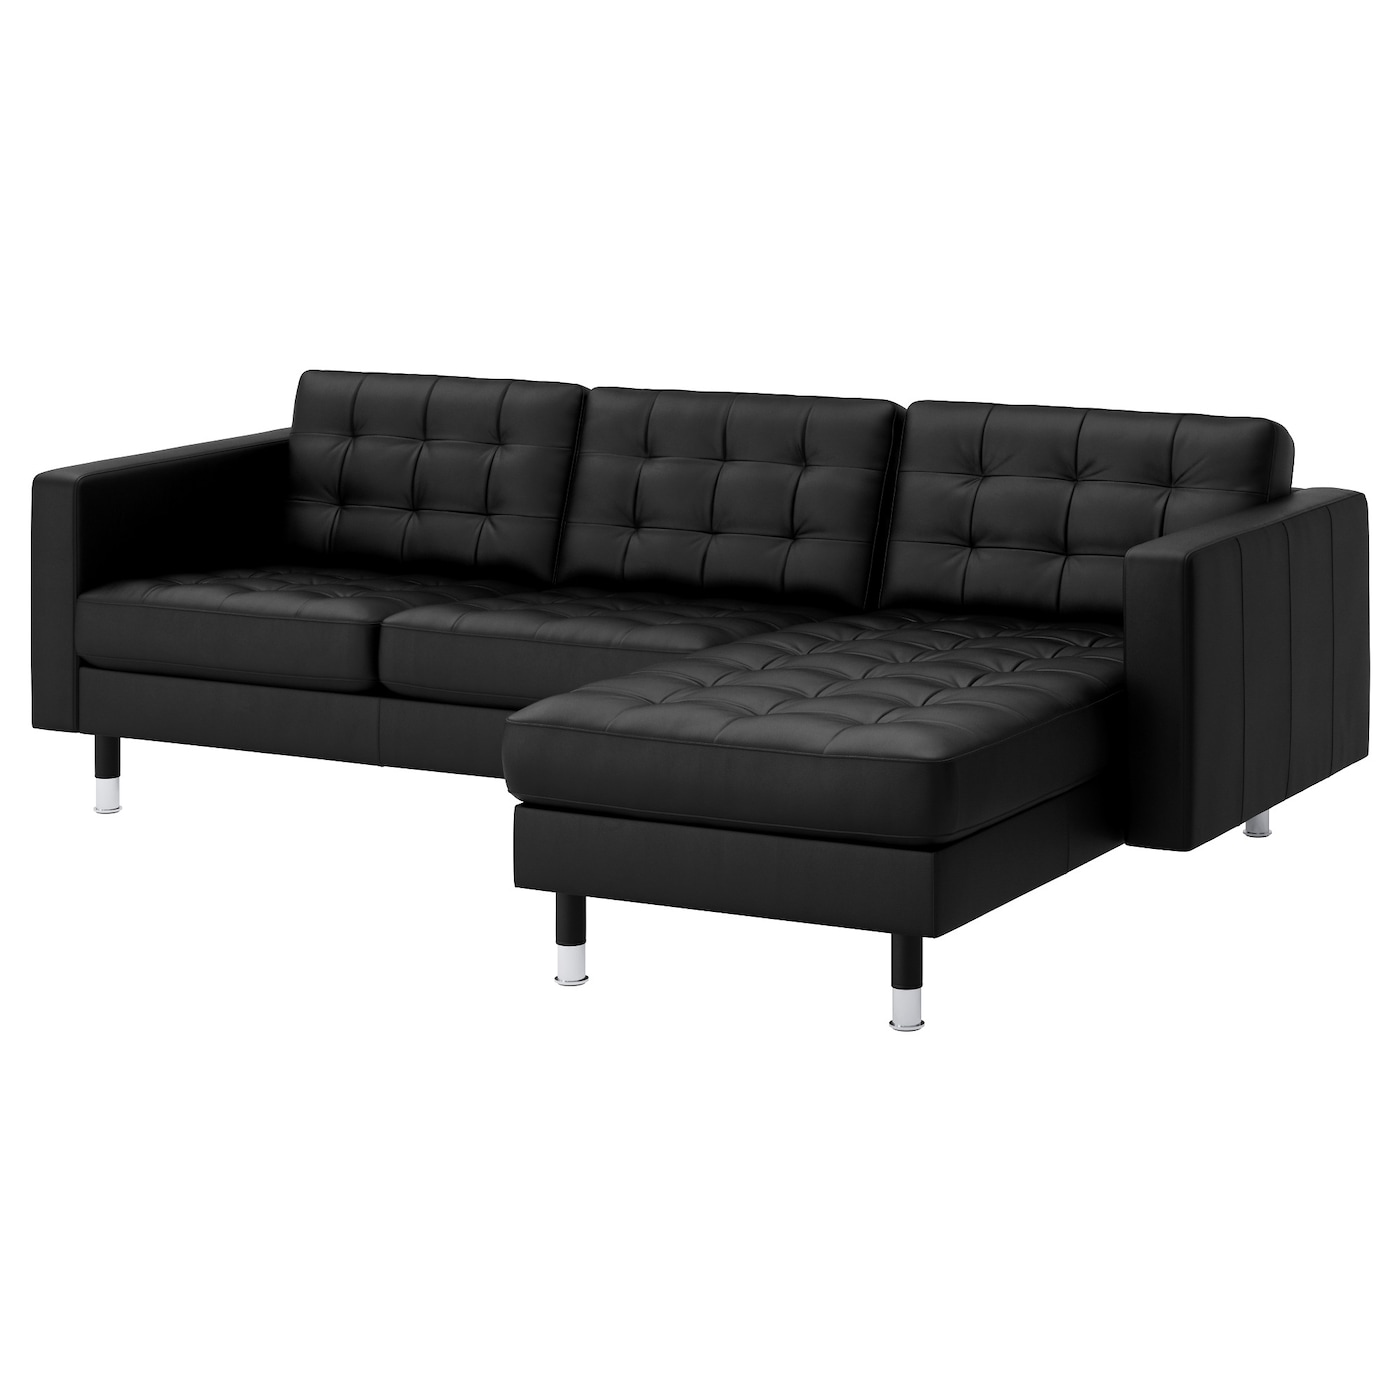 landskrona 3 seat sofa with chaise longue grann bomstad black metal ikea. Black Bedroom Furniture Sets. Home Design Ideas